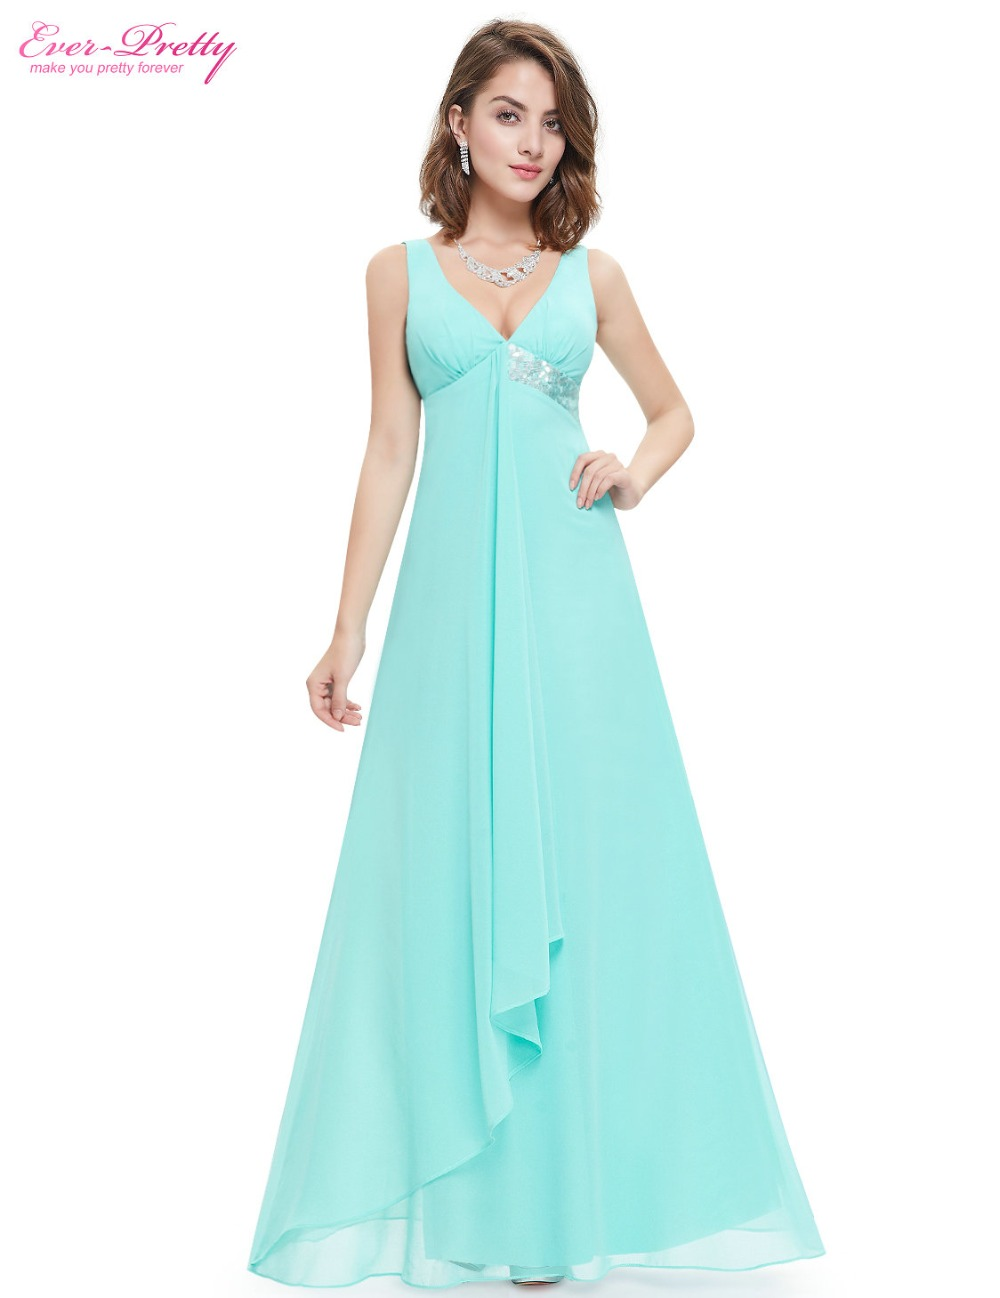 Unusual Formal Gown Clearance Gallery - Wedding and flowers ...